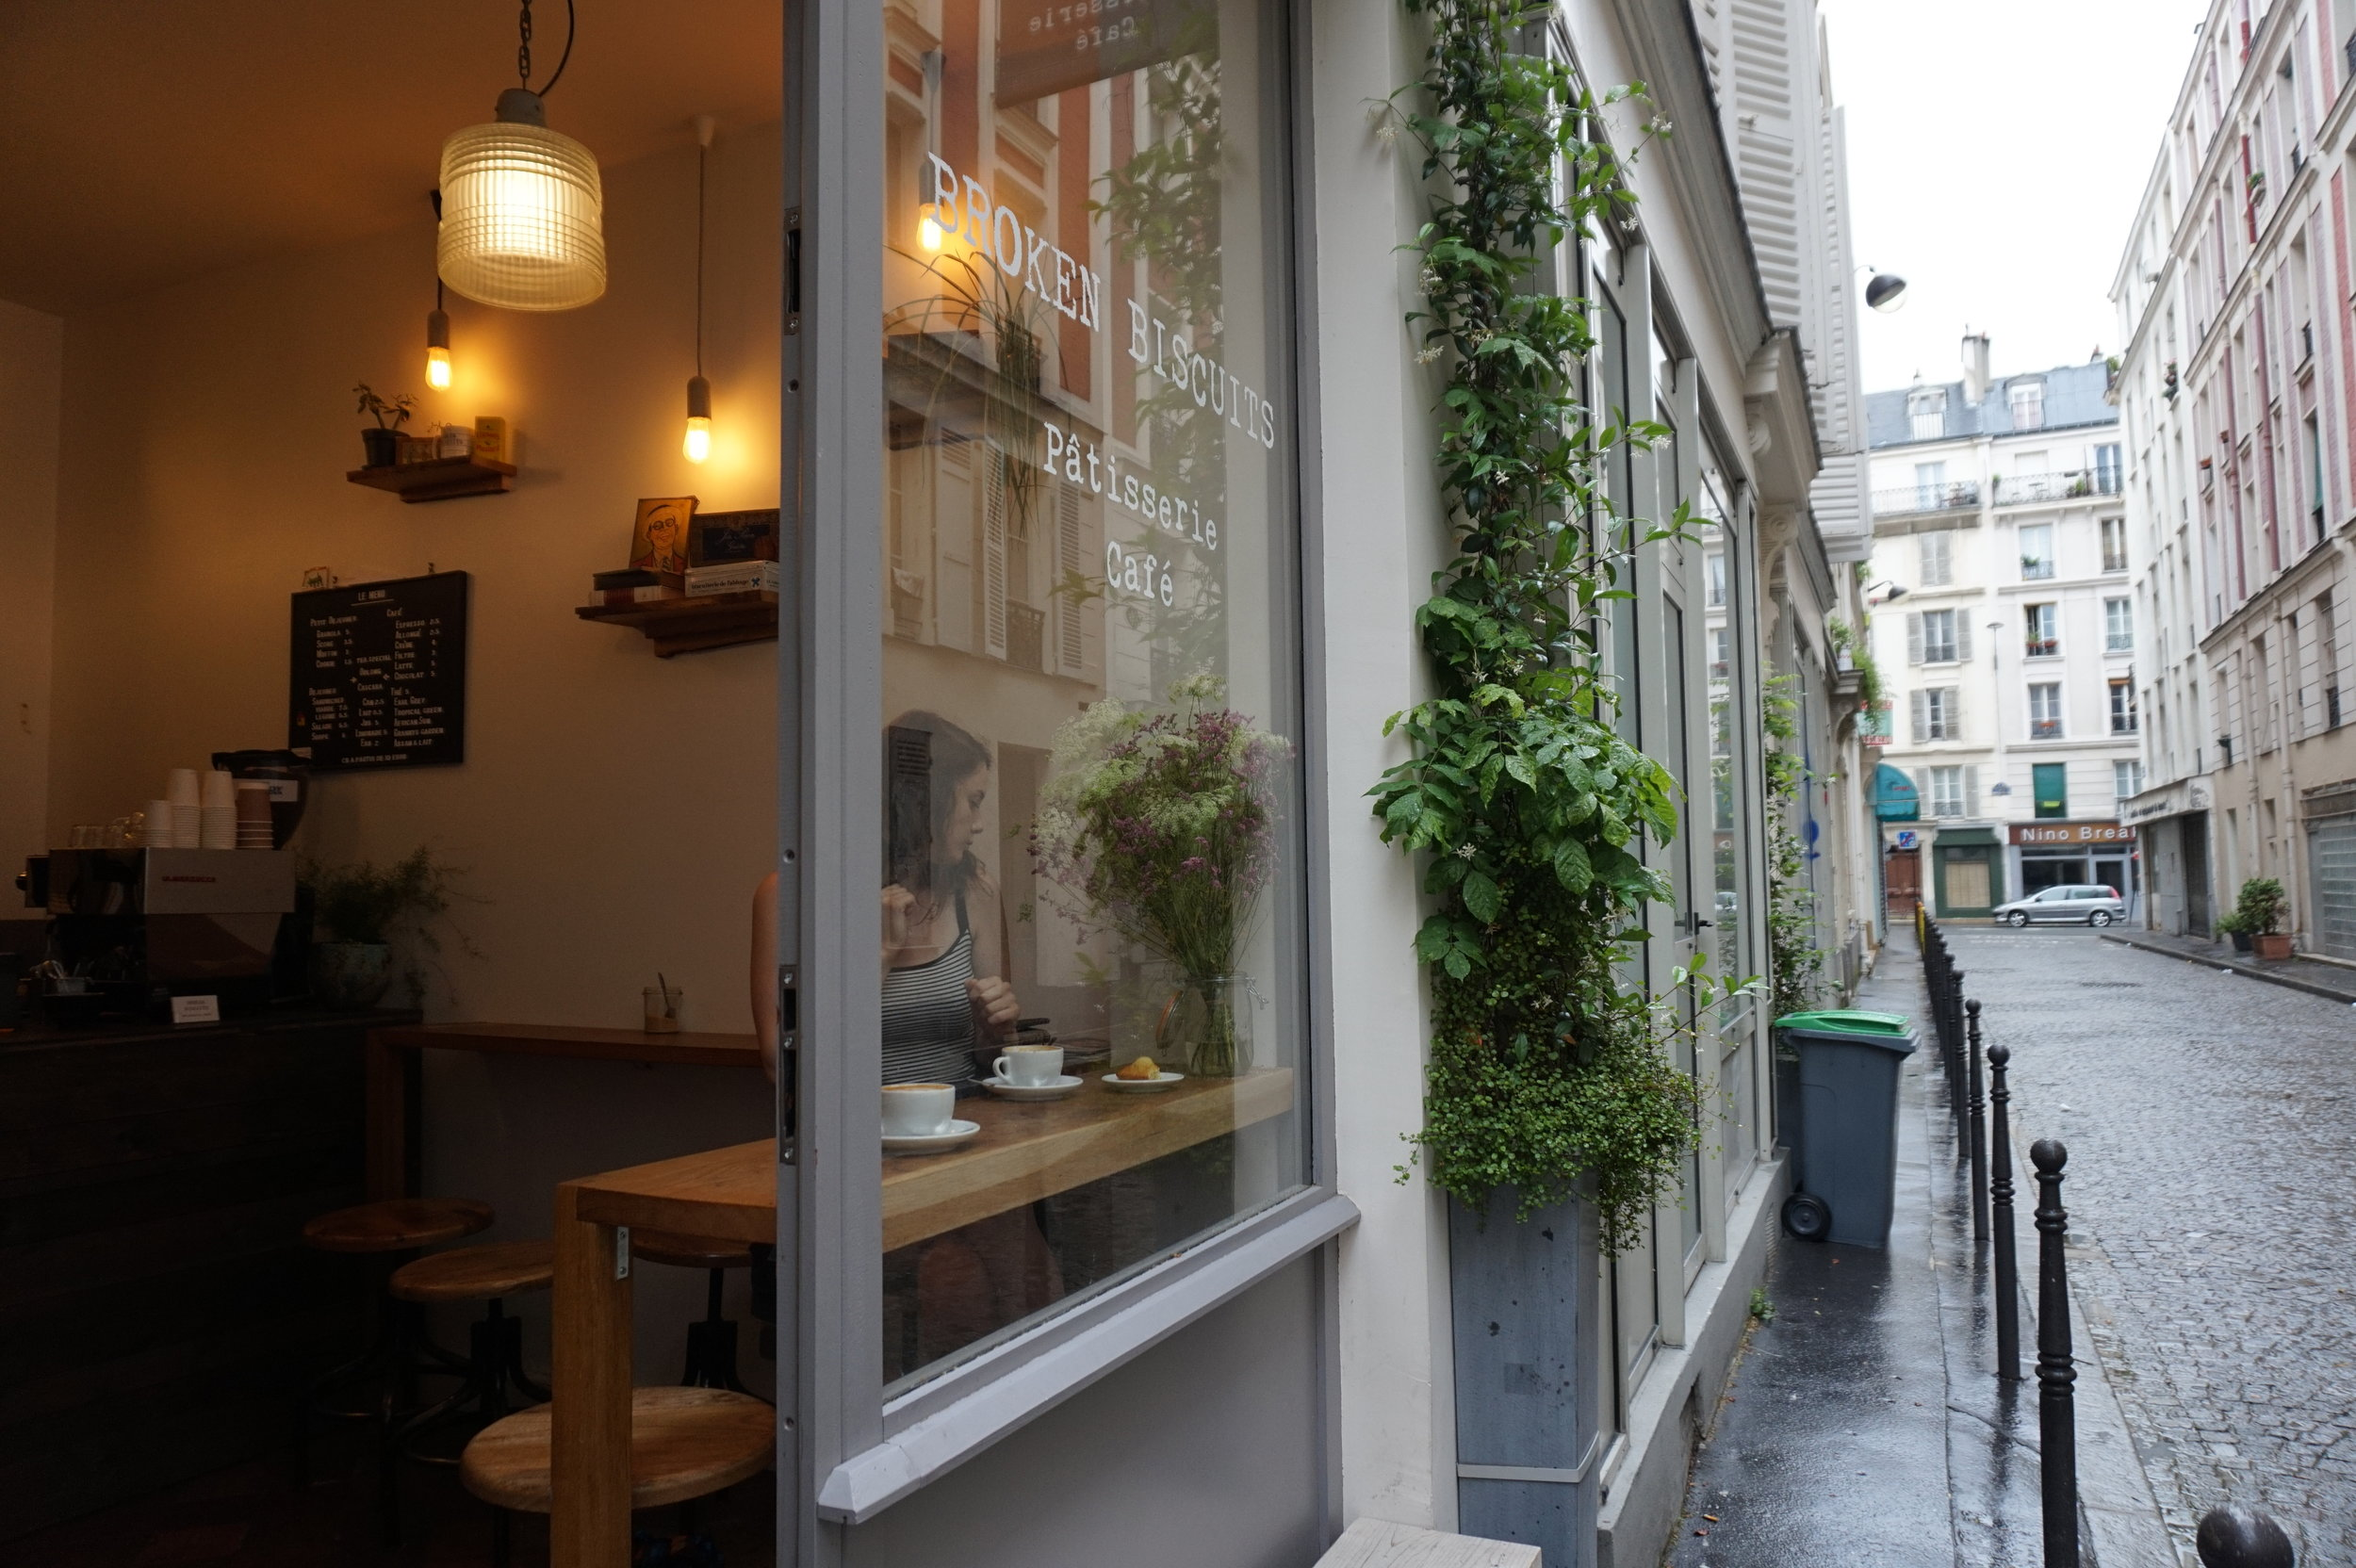 French culture is all about sitting in cute coffee shops like this one for hours on end...